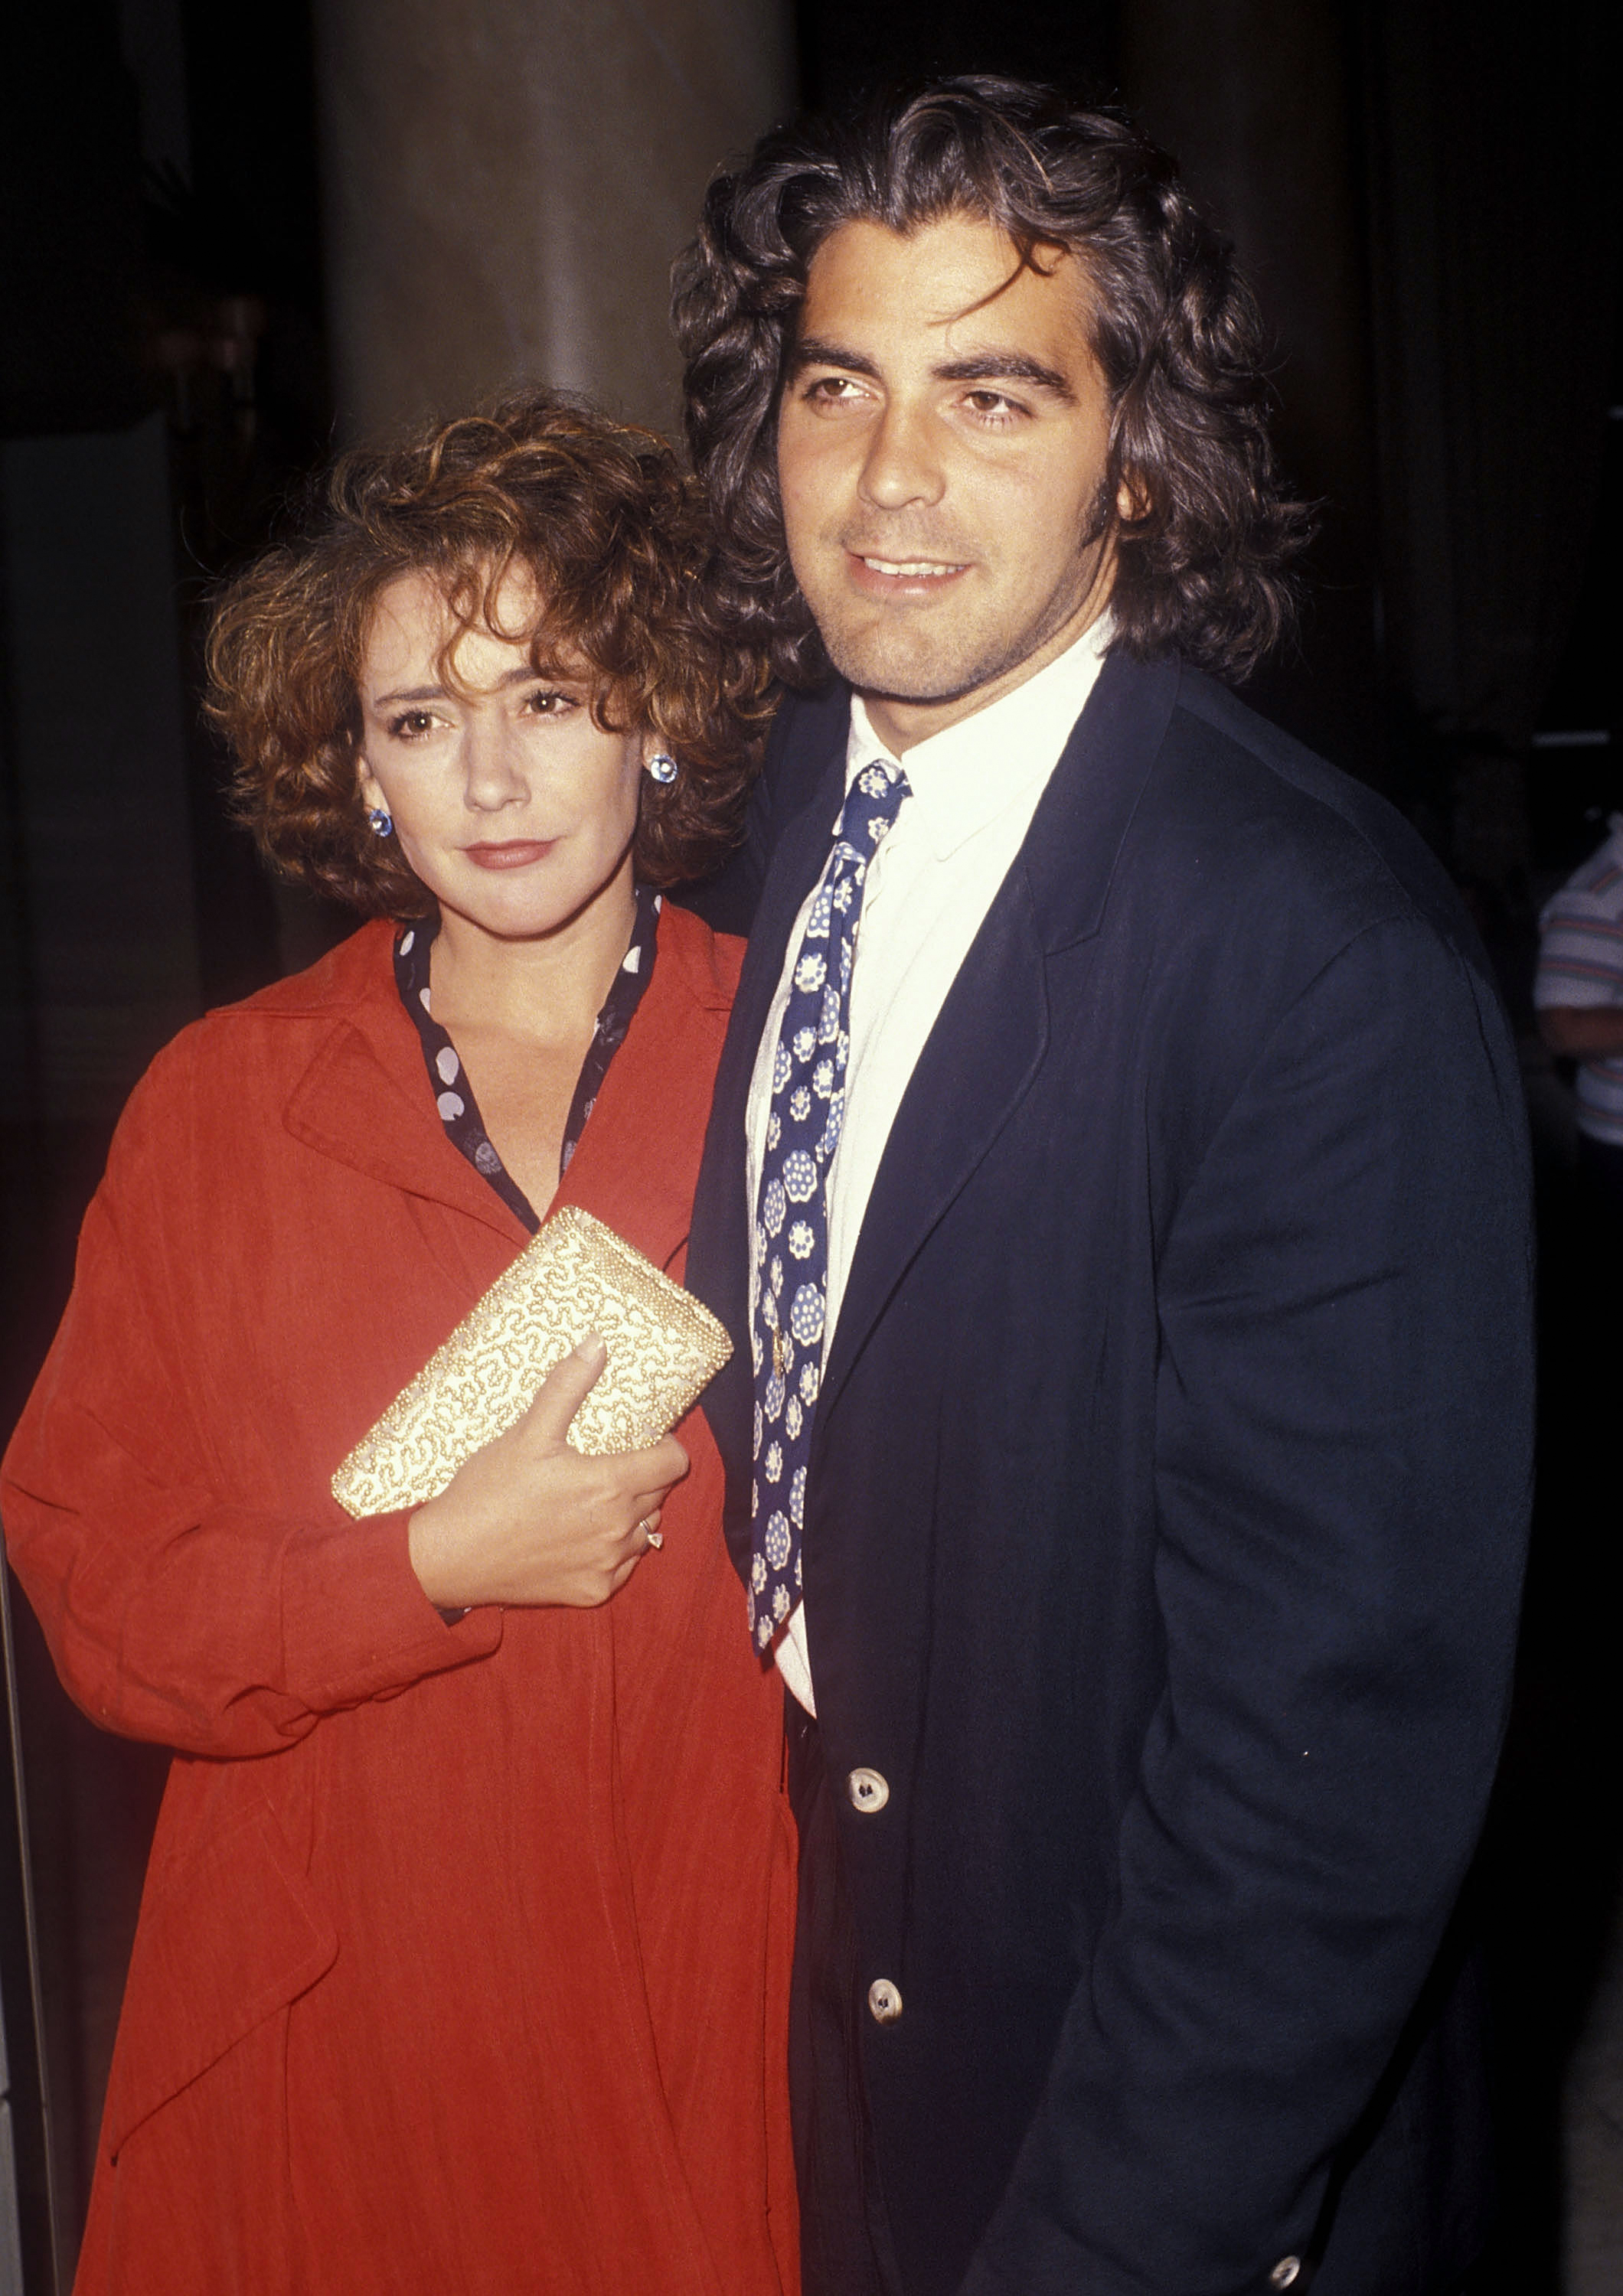 celebrity weddings year you were born george clooney talia balsam